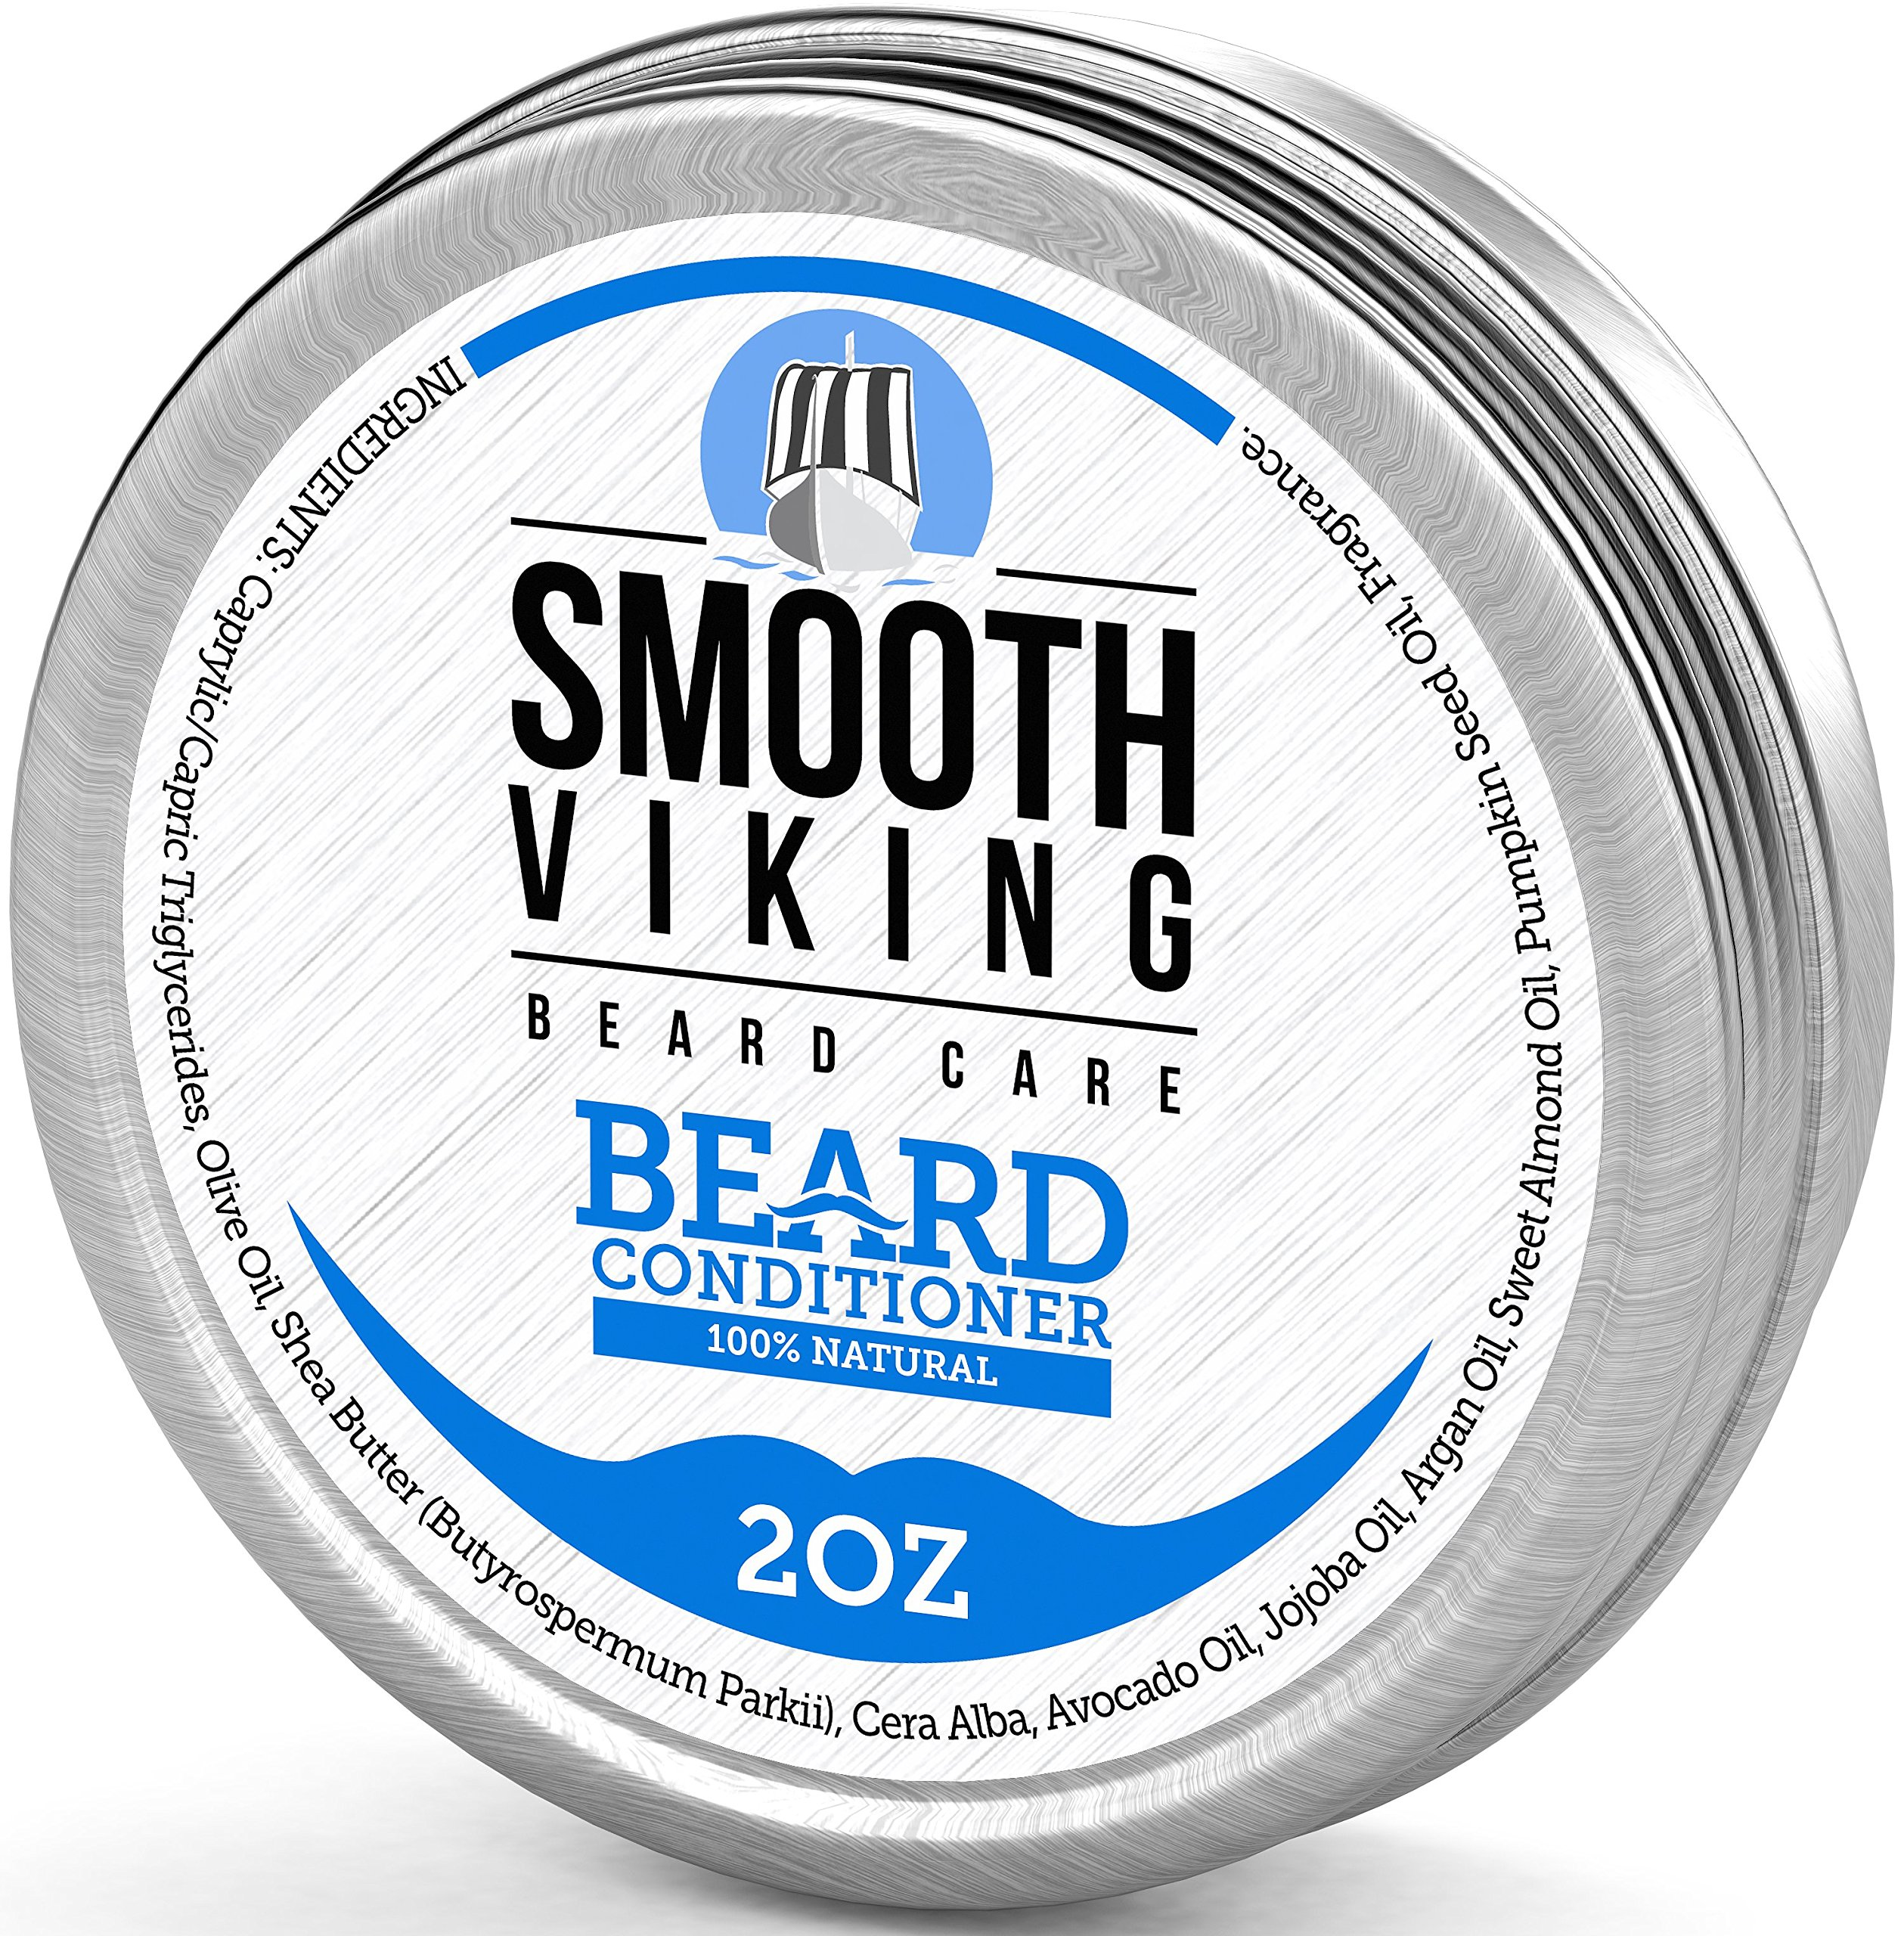 Beard Conditioner for Men - Encourages Growth – Leave-In Wax Conditioner that Softens and Soothes Itching - Made with Argan Oil Beeswax and Shea Butter - 2 OZ – Smooth Viking